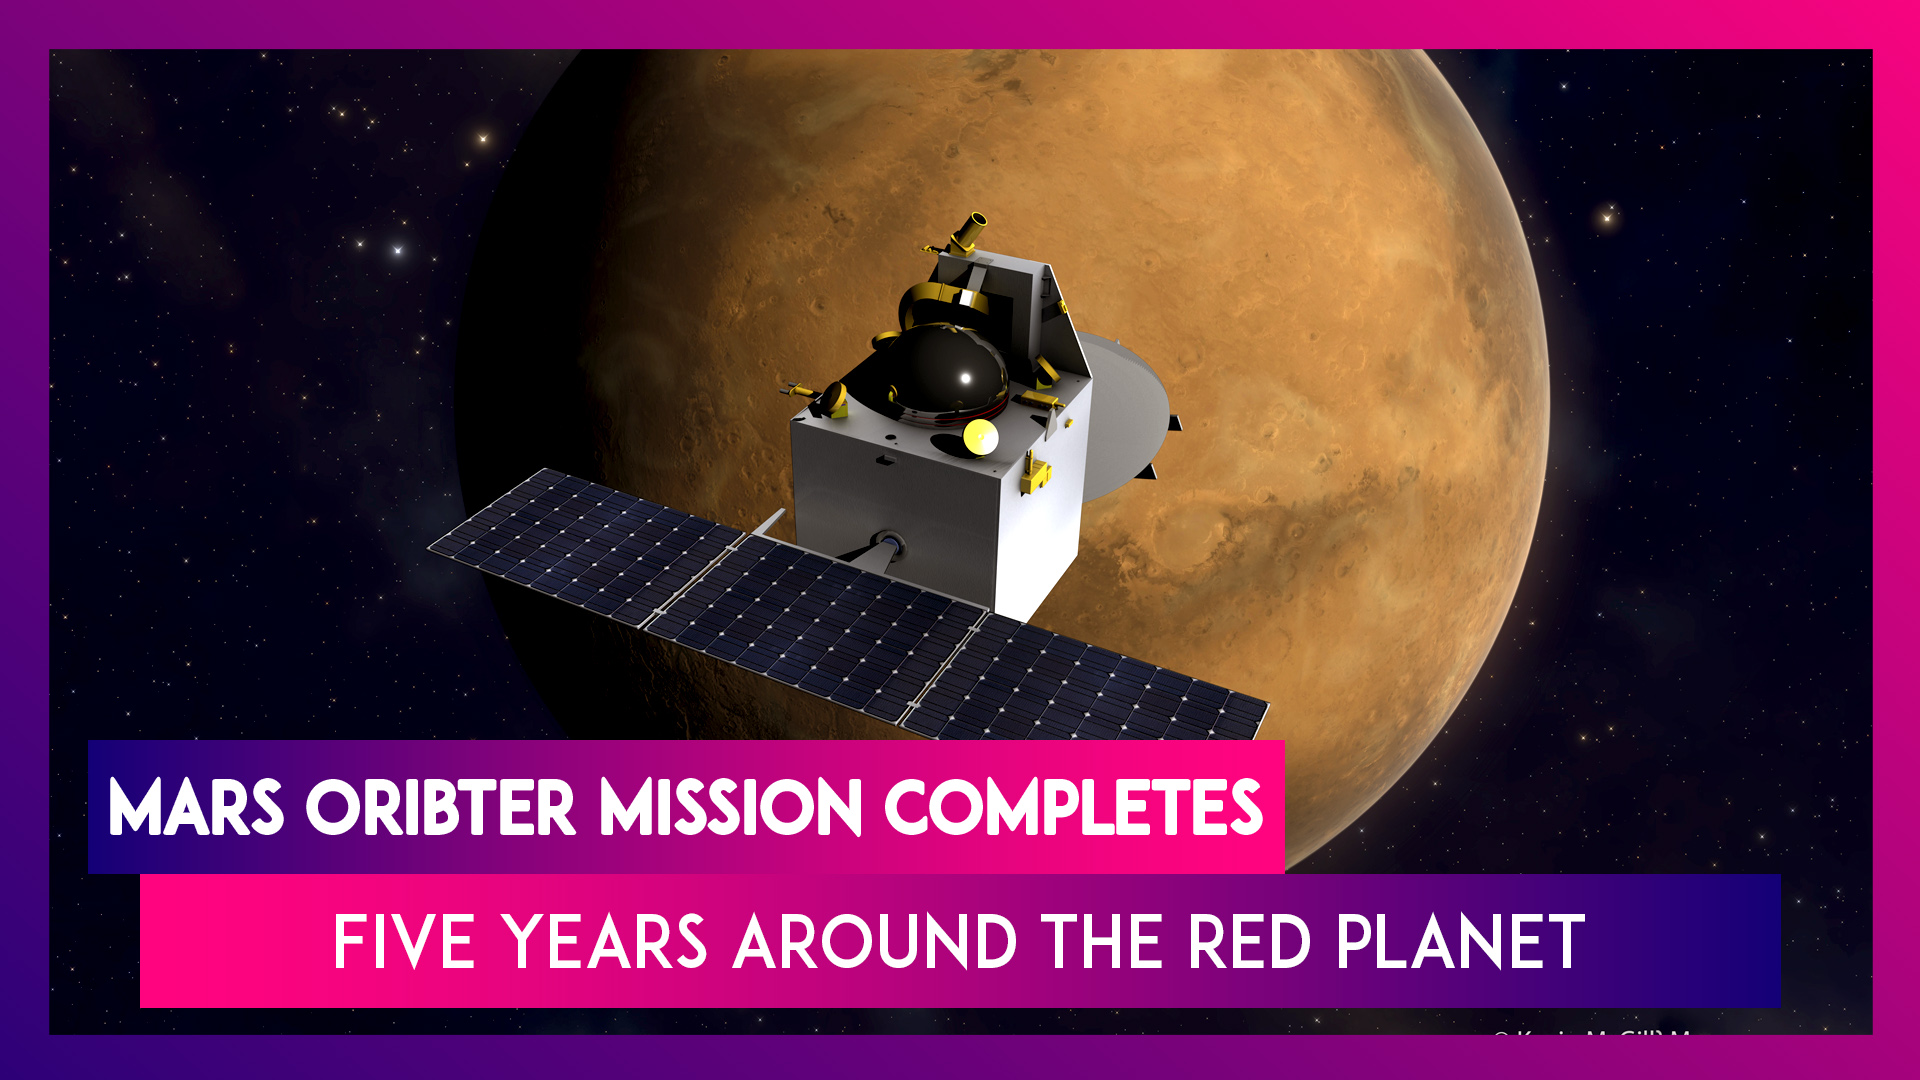 Mars Orbiter Mission (MOM) Completes Five Years Around The Red Planet